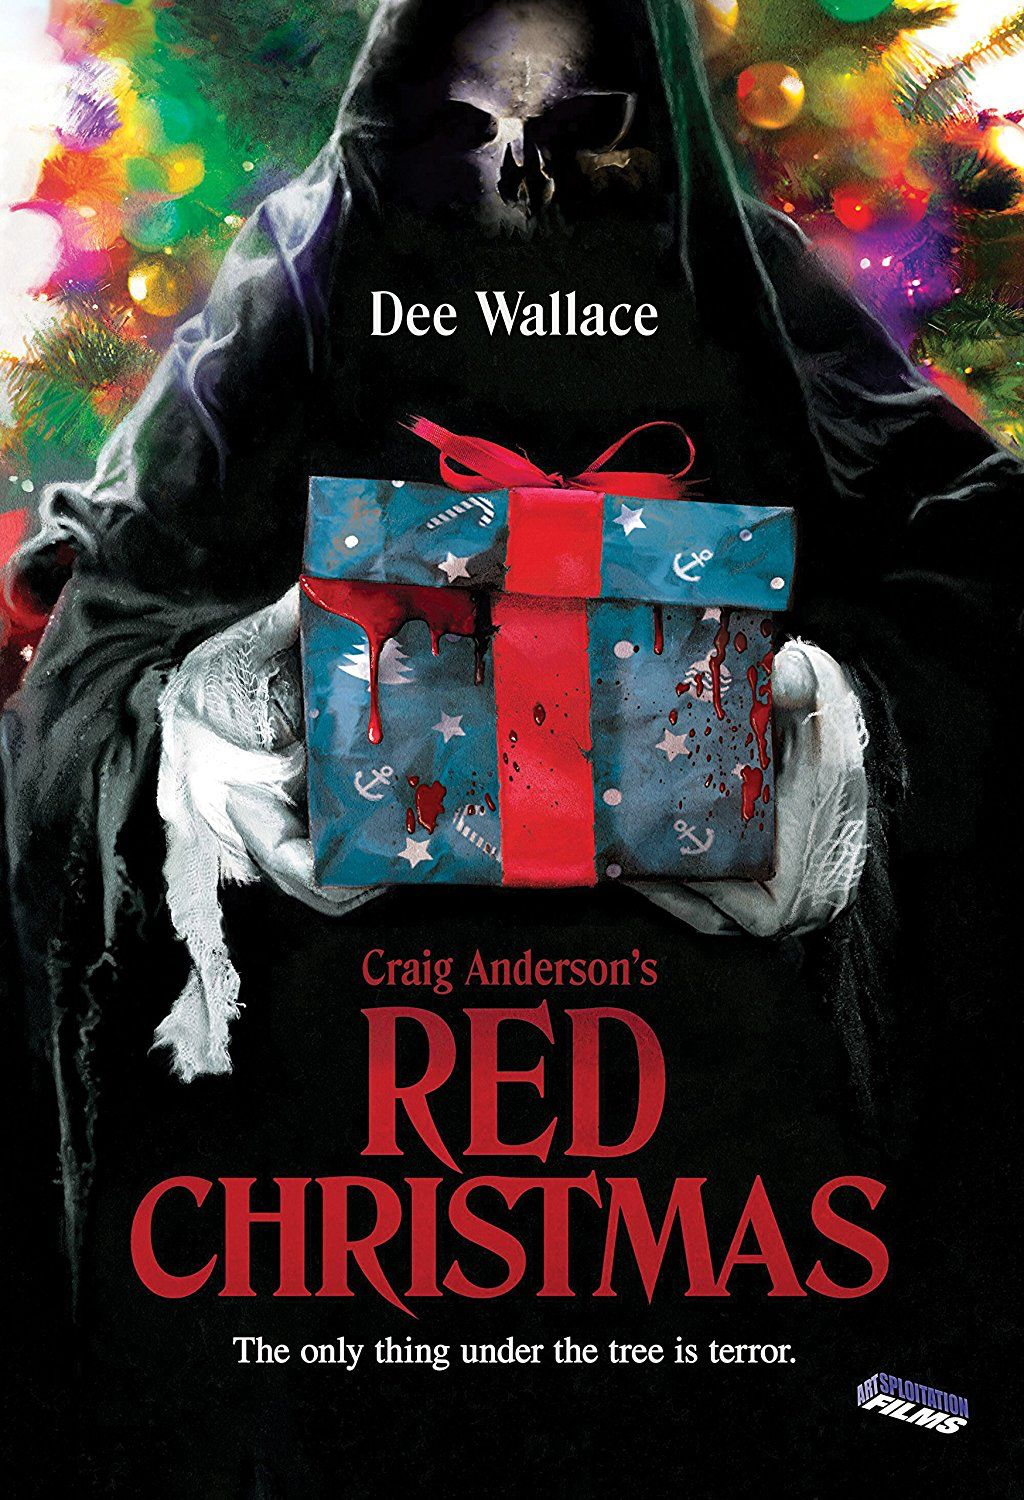 RED CHRISTMAS DVD (ARTSPLOITATION) Christmas horror